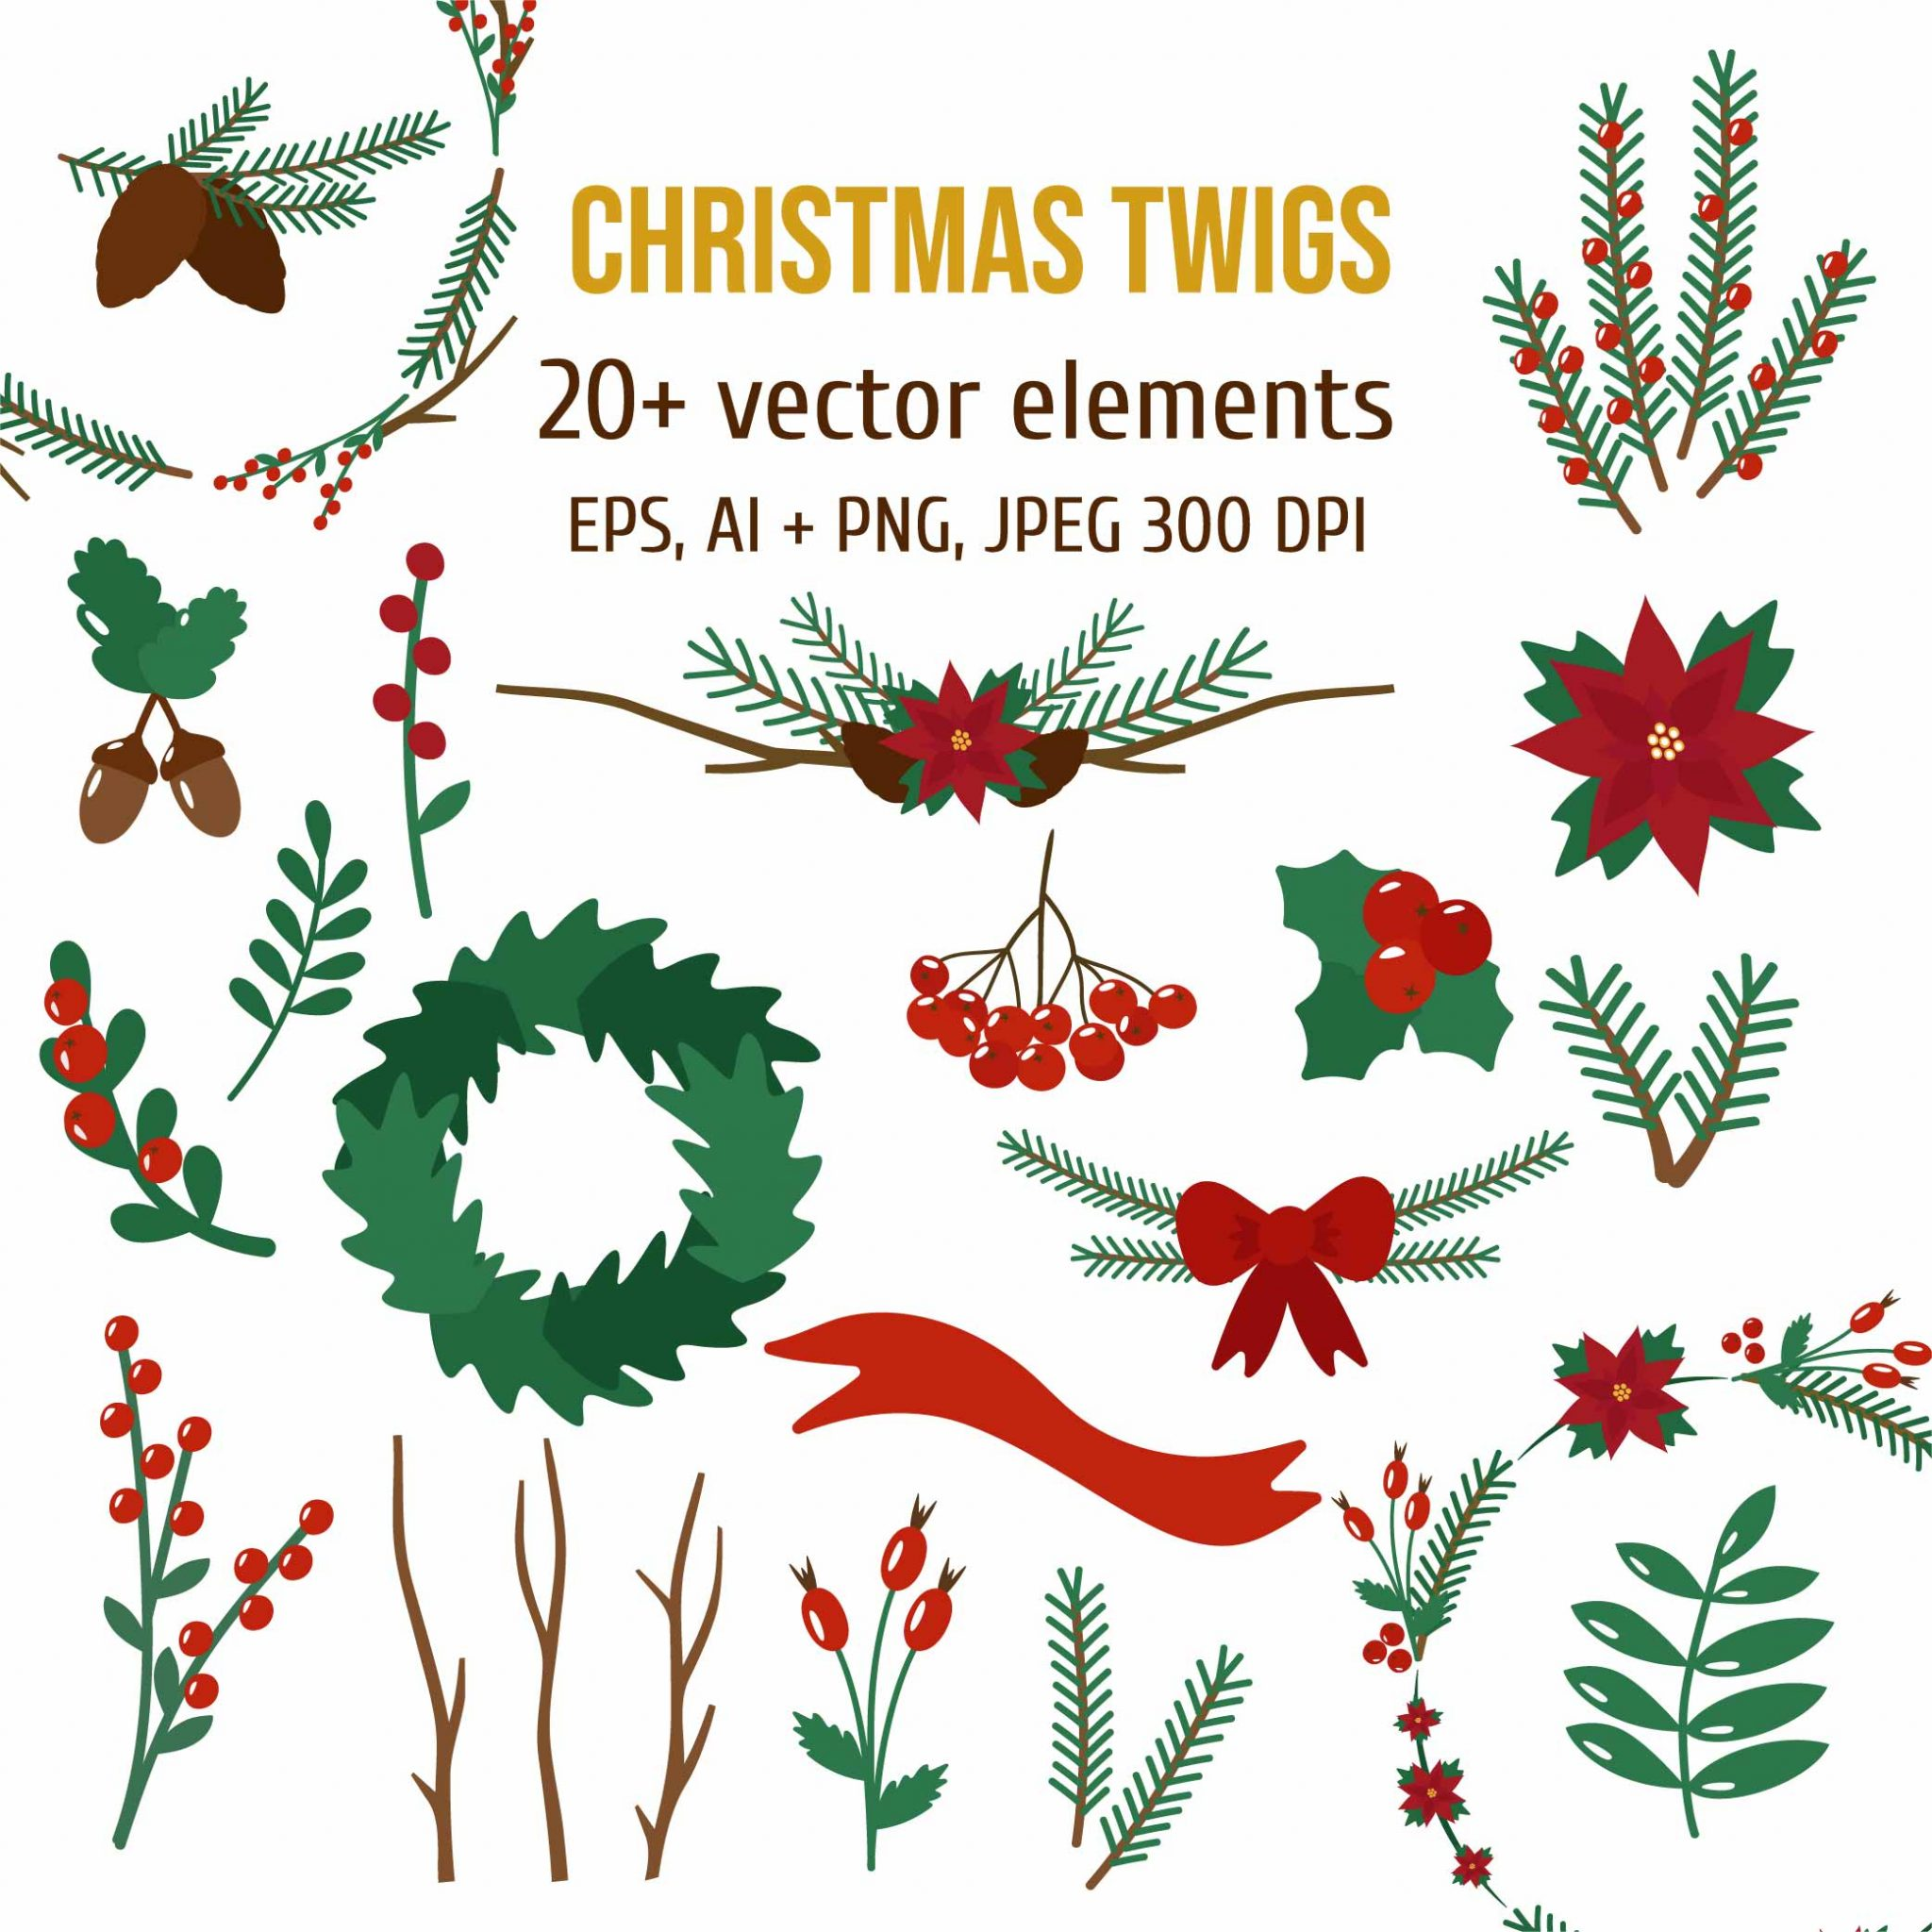 Christmas Twigs Vector Set of Illustrations cover image.